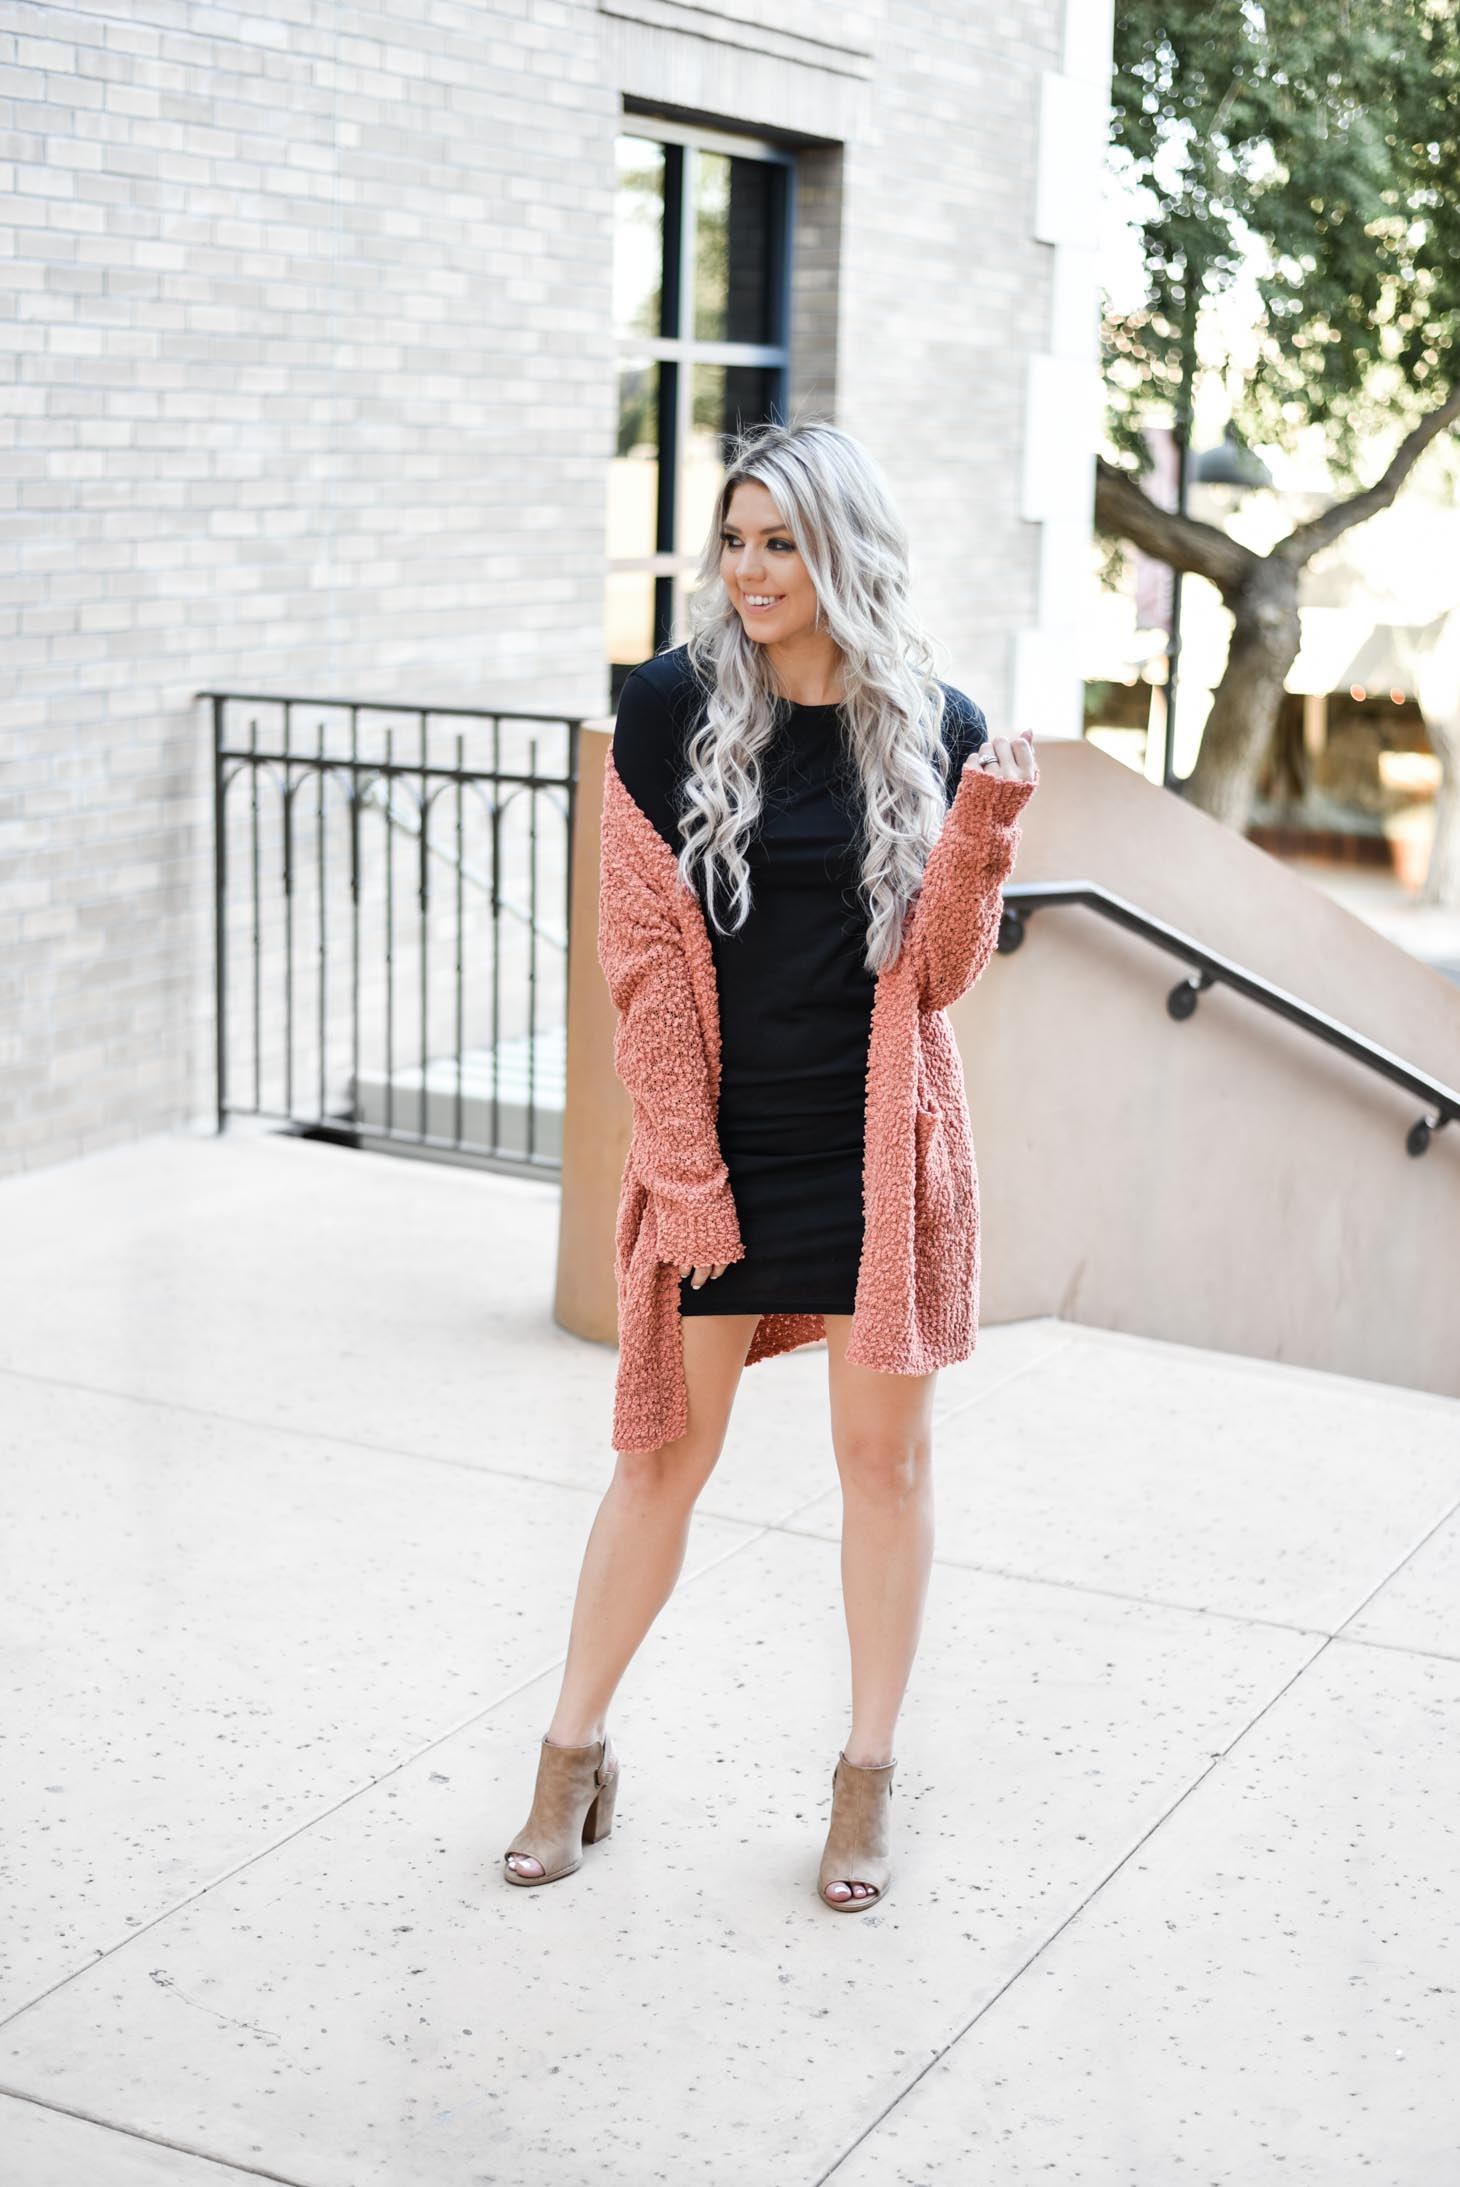 Erin Elizabeth of Wink and a Twirl styles the must have bodycon long sleeve dress from Pink Lily Boutique two different ways for Fall